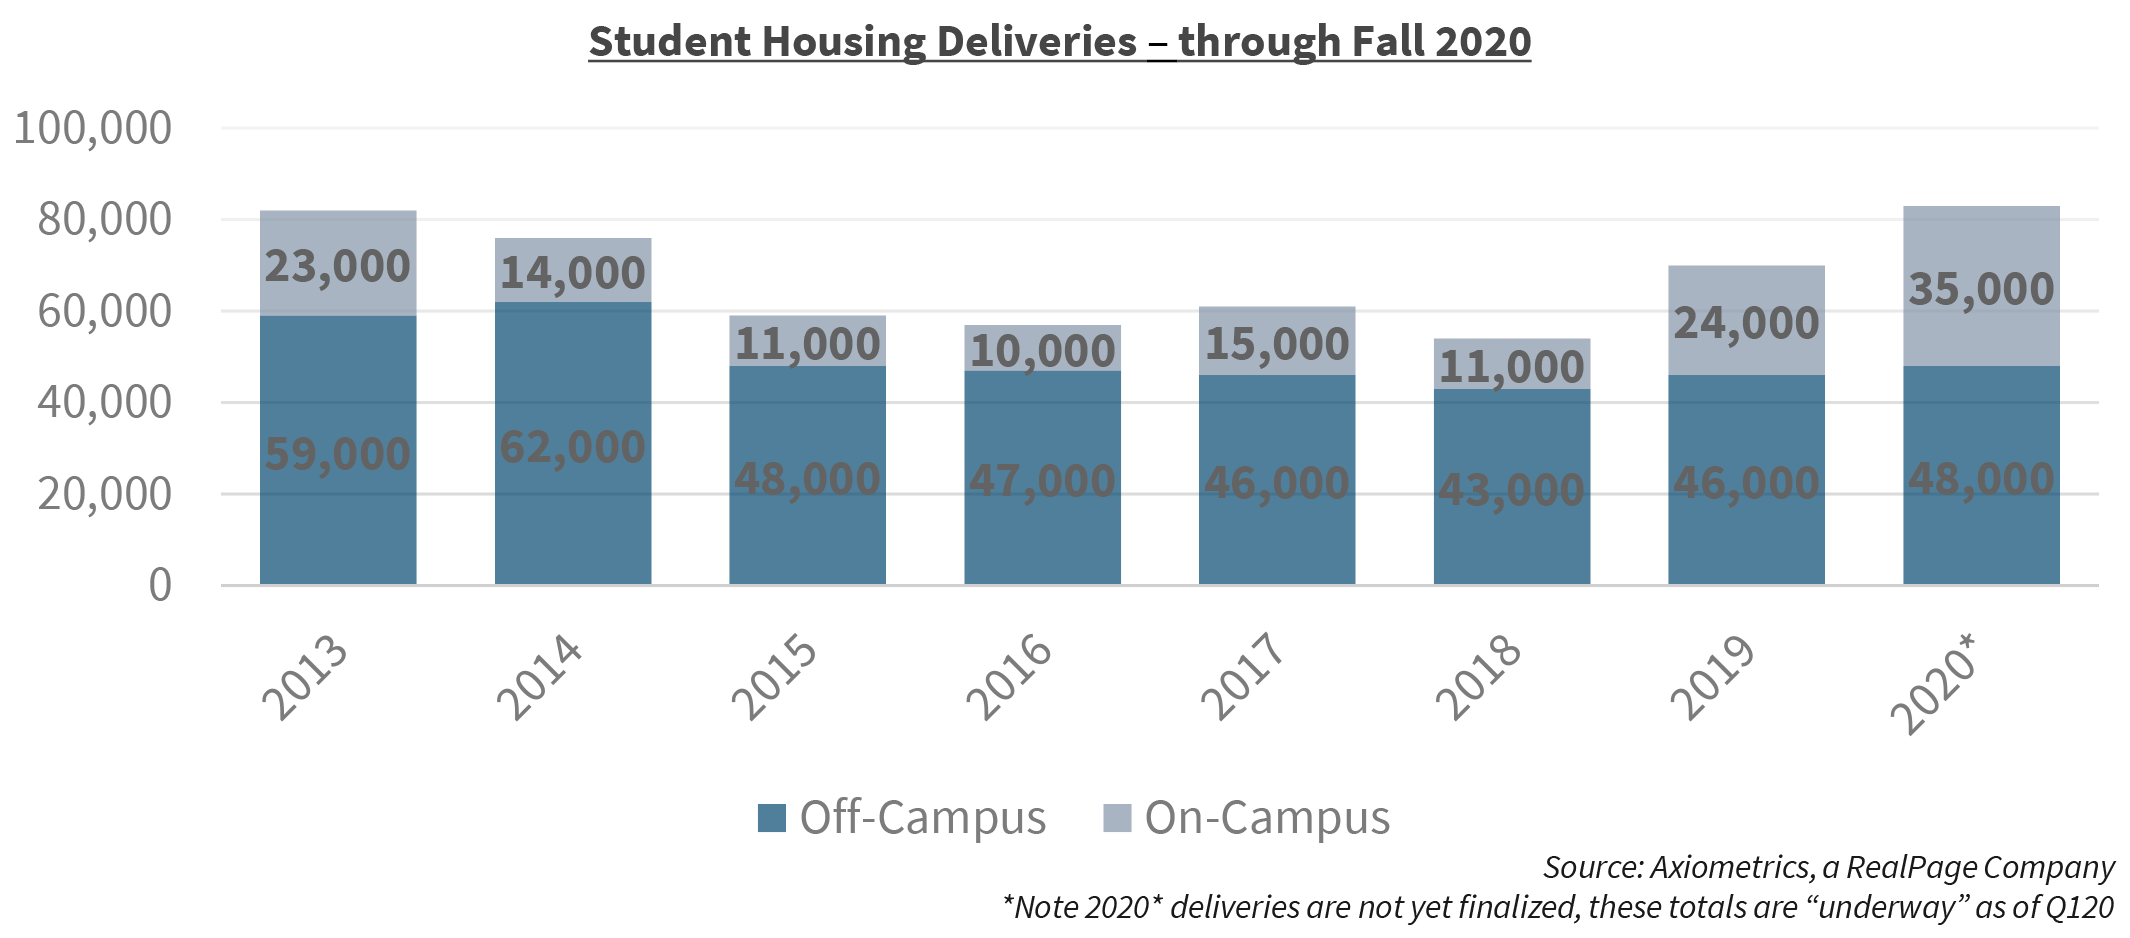 Student Housing Deliveries - through Fall 2020